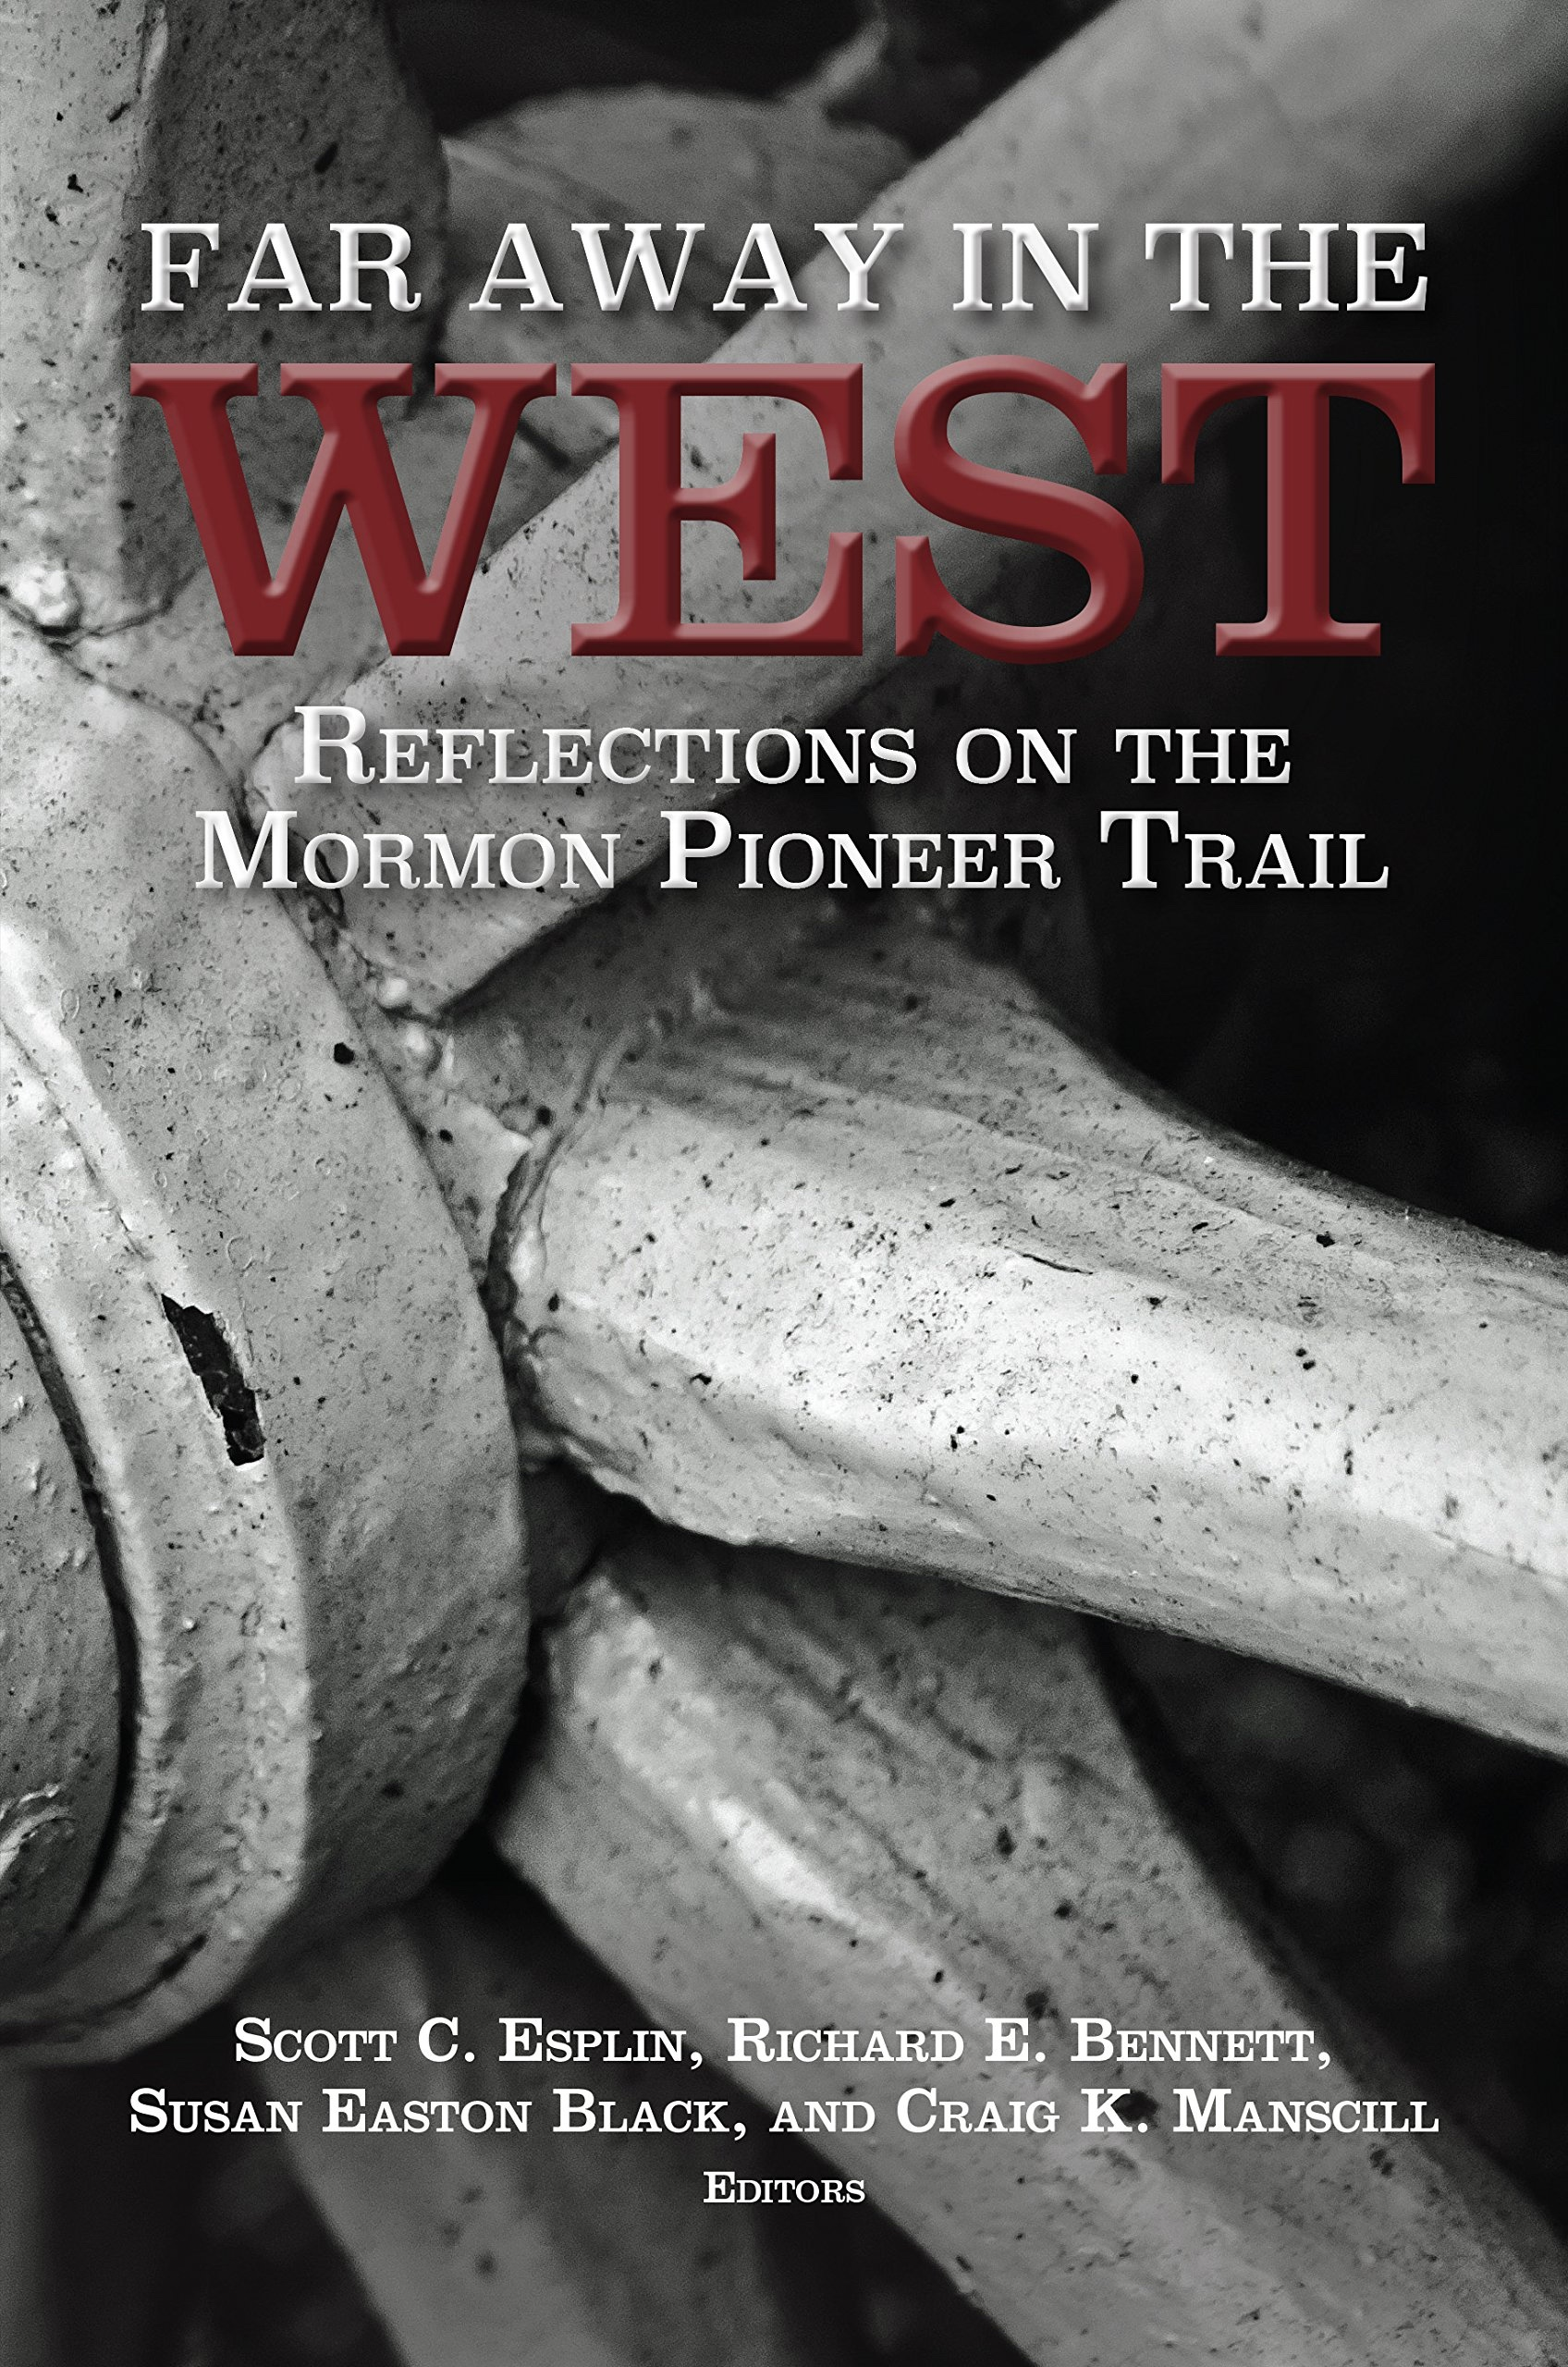 Far Away in the West; Reflections on the Mormon Pioneer Trail, Scott Esplin, Richard E. Bennett, Susan Easton Black, and Craig K. Manscill